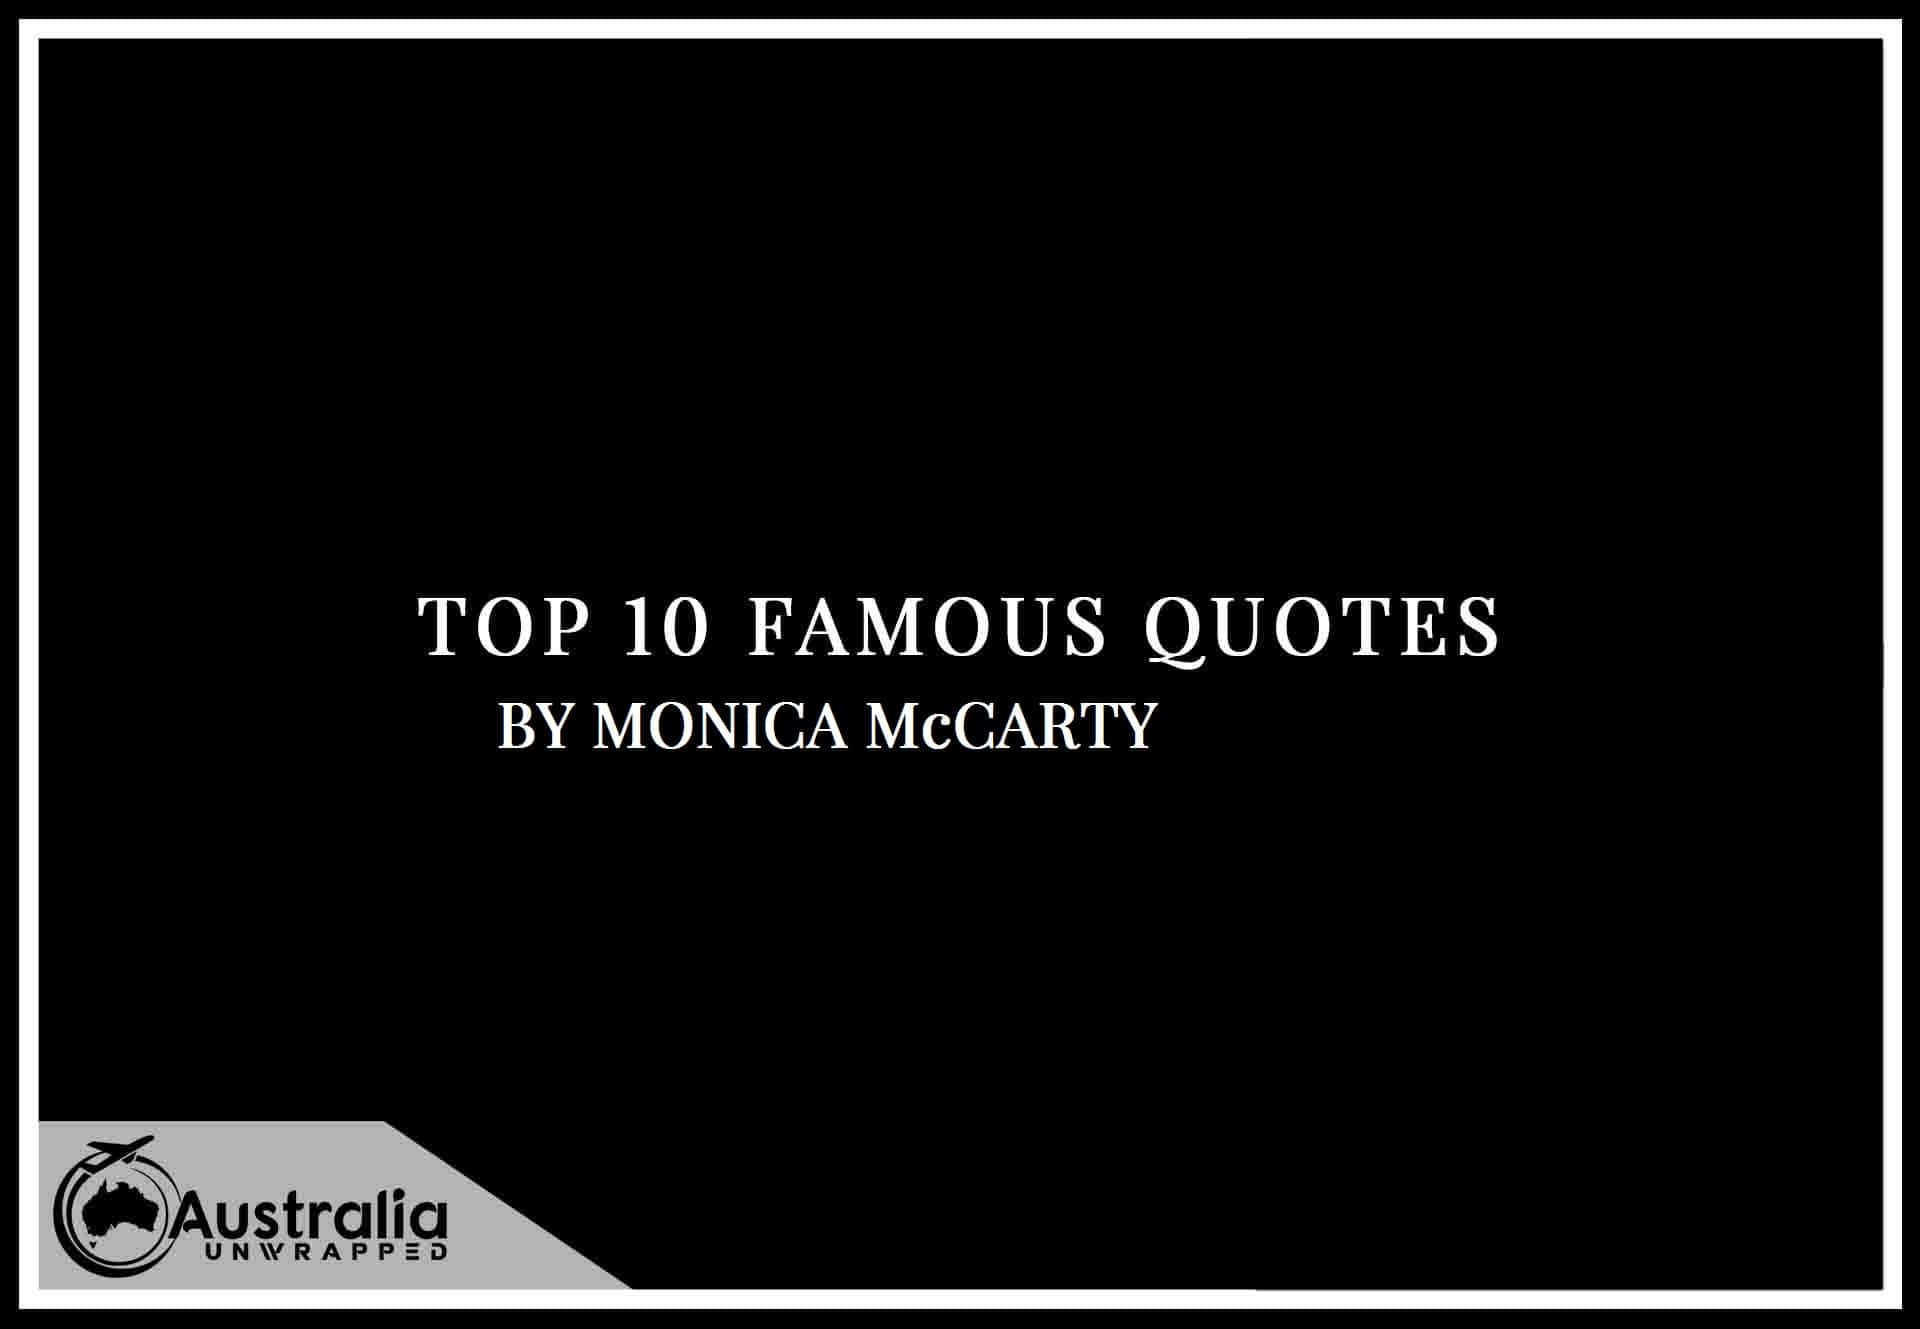 Monica McCarty's Top 10 Popular and Famous Quotes